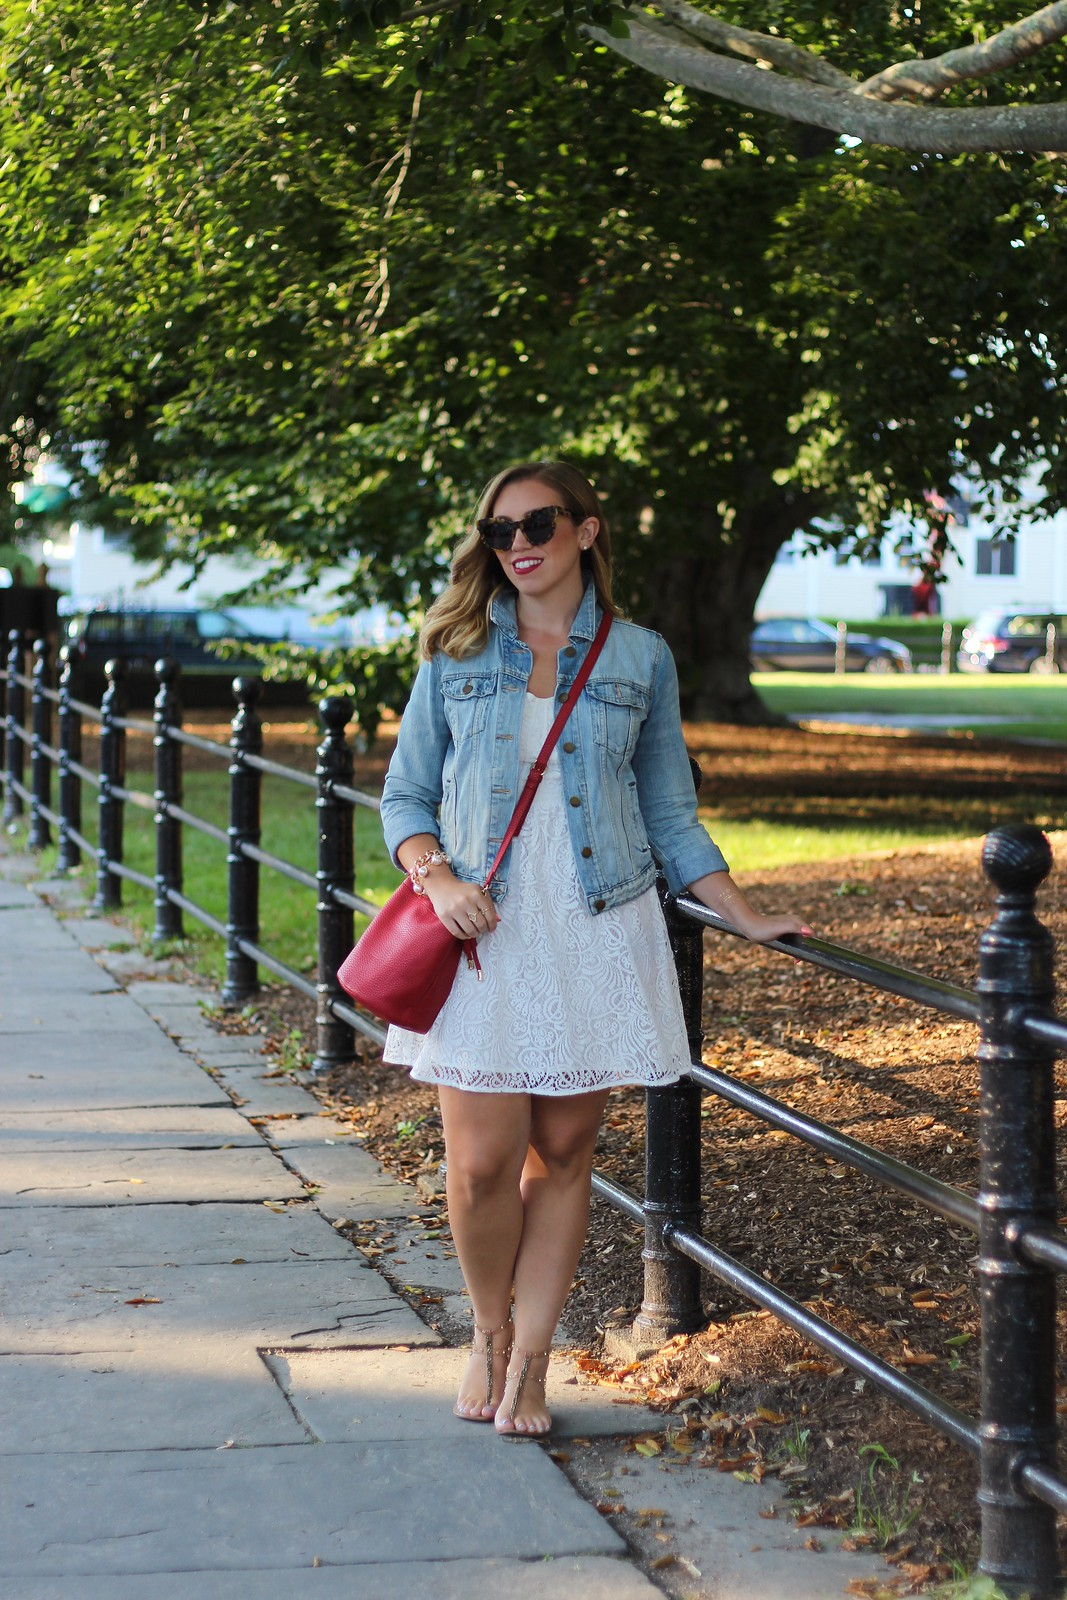 White After Labor Day | White Lace Dress & Jean Jacket | Red White Blue Fourth of July Outfit | July 4th Look | The Best Little White Dresses Under $50 for Summer | Summer Outfit Ideas | LWD Little White Dress | Casual Outfit Inspiration